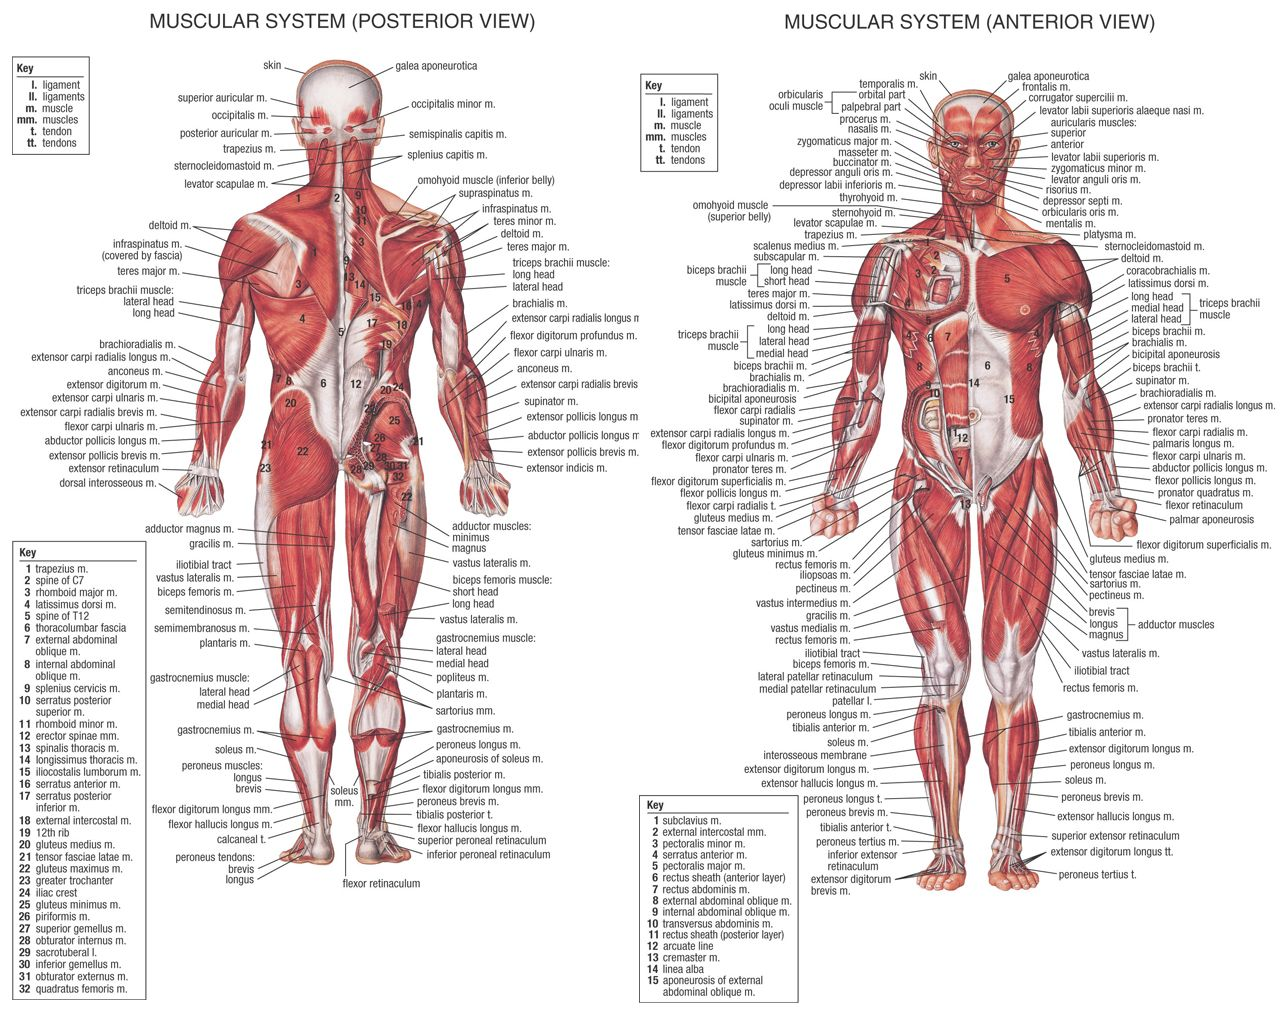 Pin By Bud Wy On Sports Medicine Pinterest Muscles Muscle